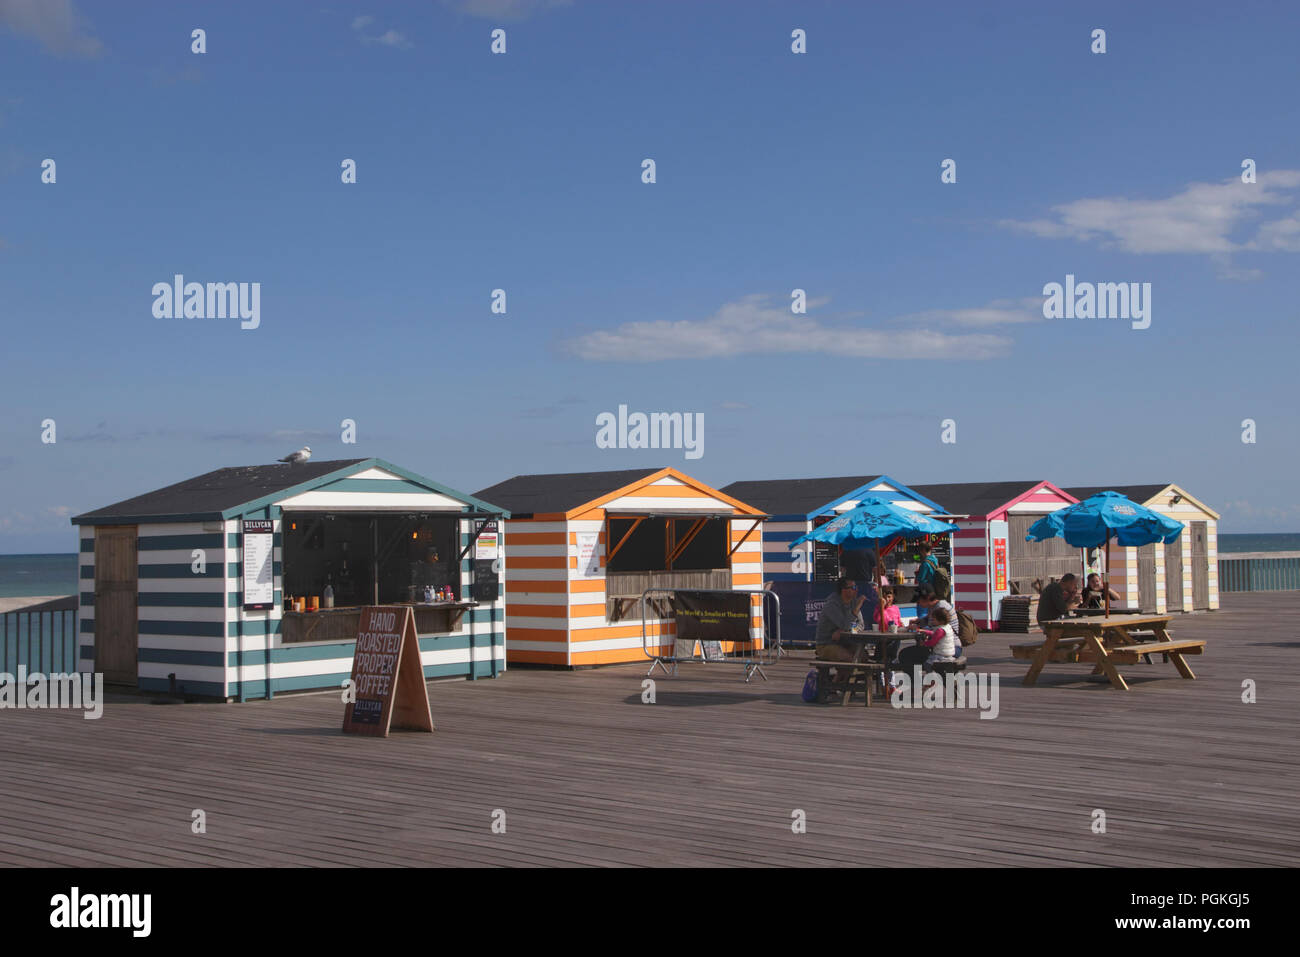 Billycan Coffee shop on new Hastings pier summer 2018 - Stock Image